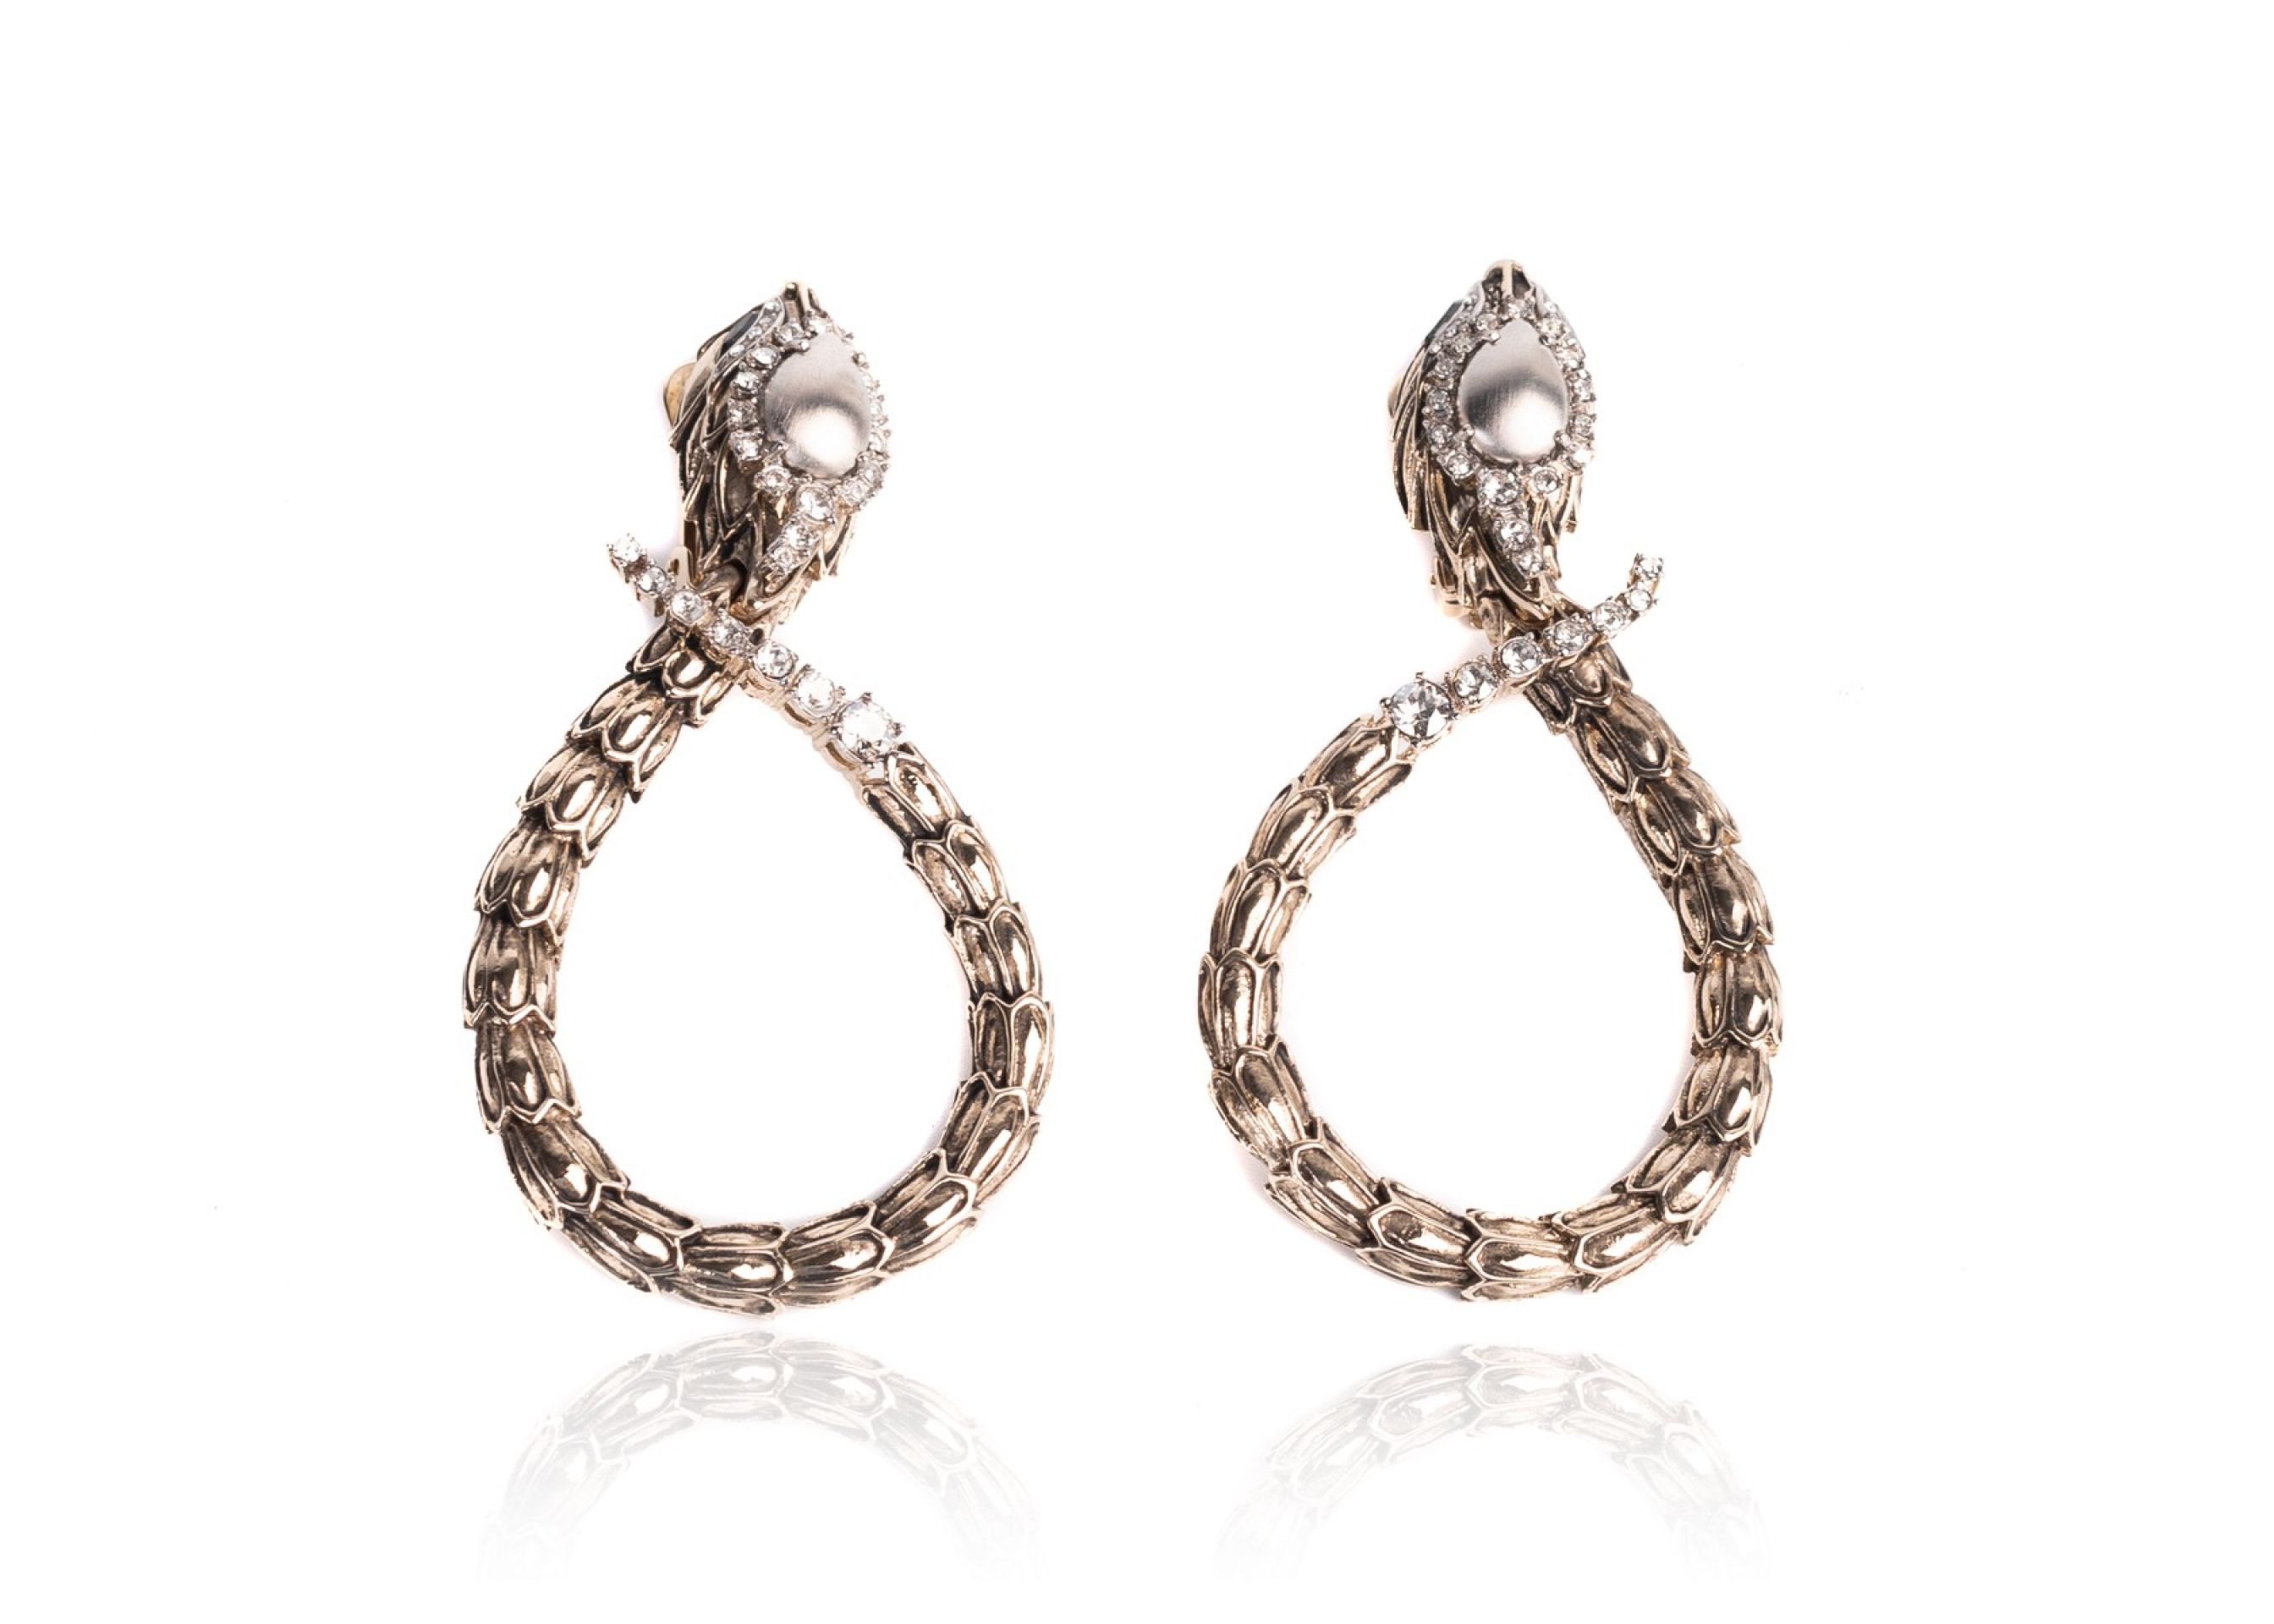 ROBERTO CAVALLI AGED GOLD SERPENT SNAKE CLIP ON EARRINGS